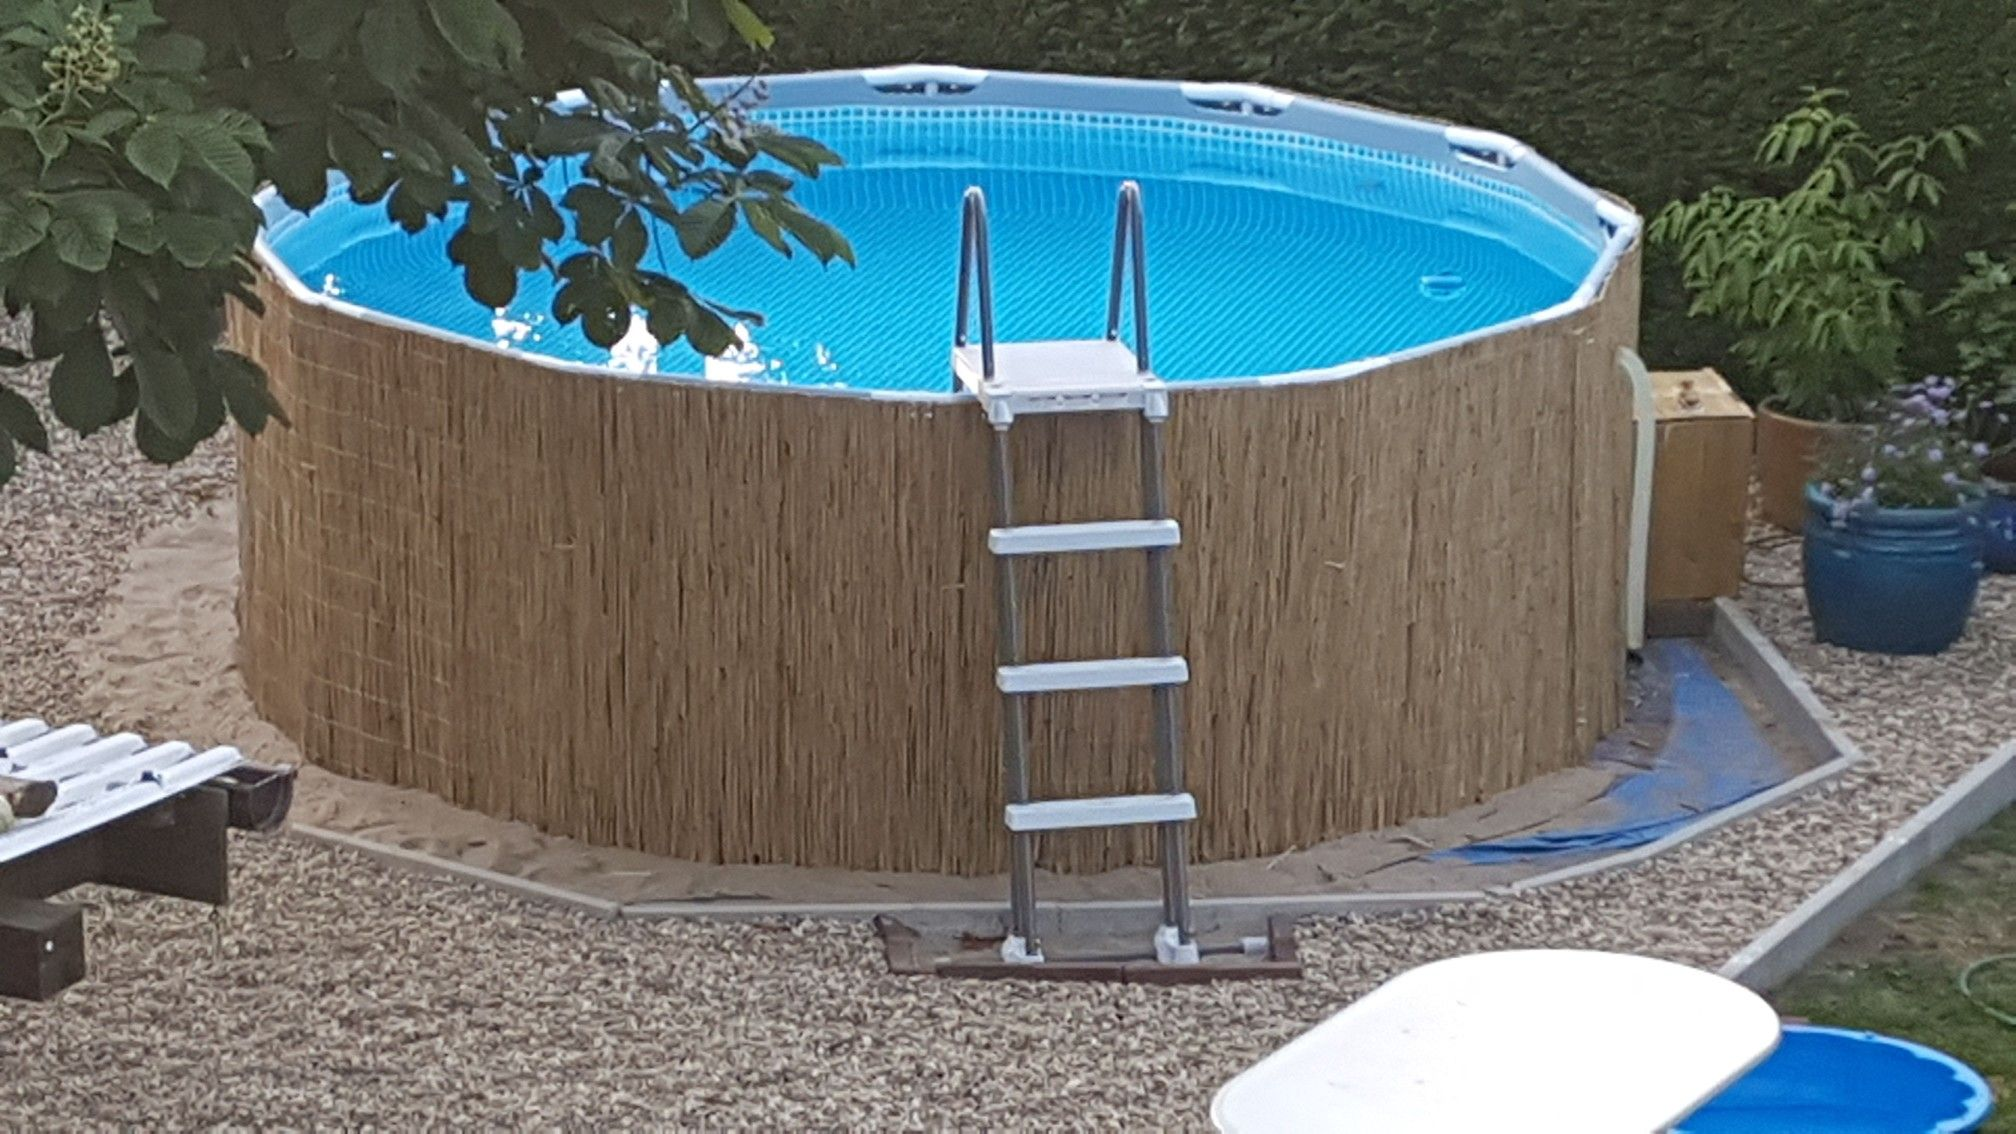 #Frame Pool #Above Ground Pool #Pool Transformation #Bambusmatten Als Pool  Verkleidung